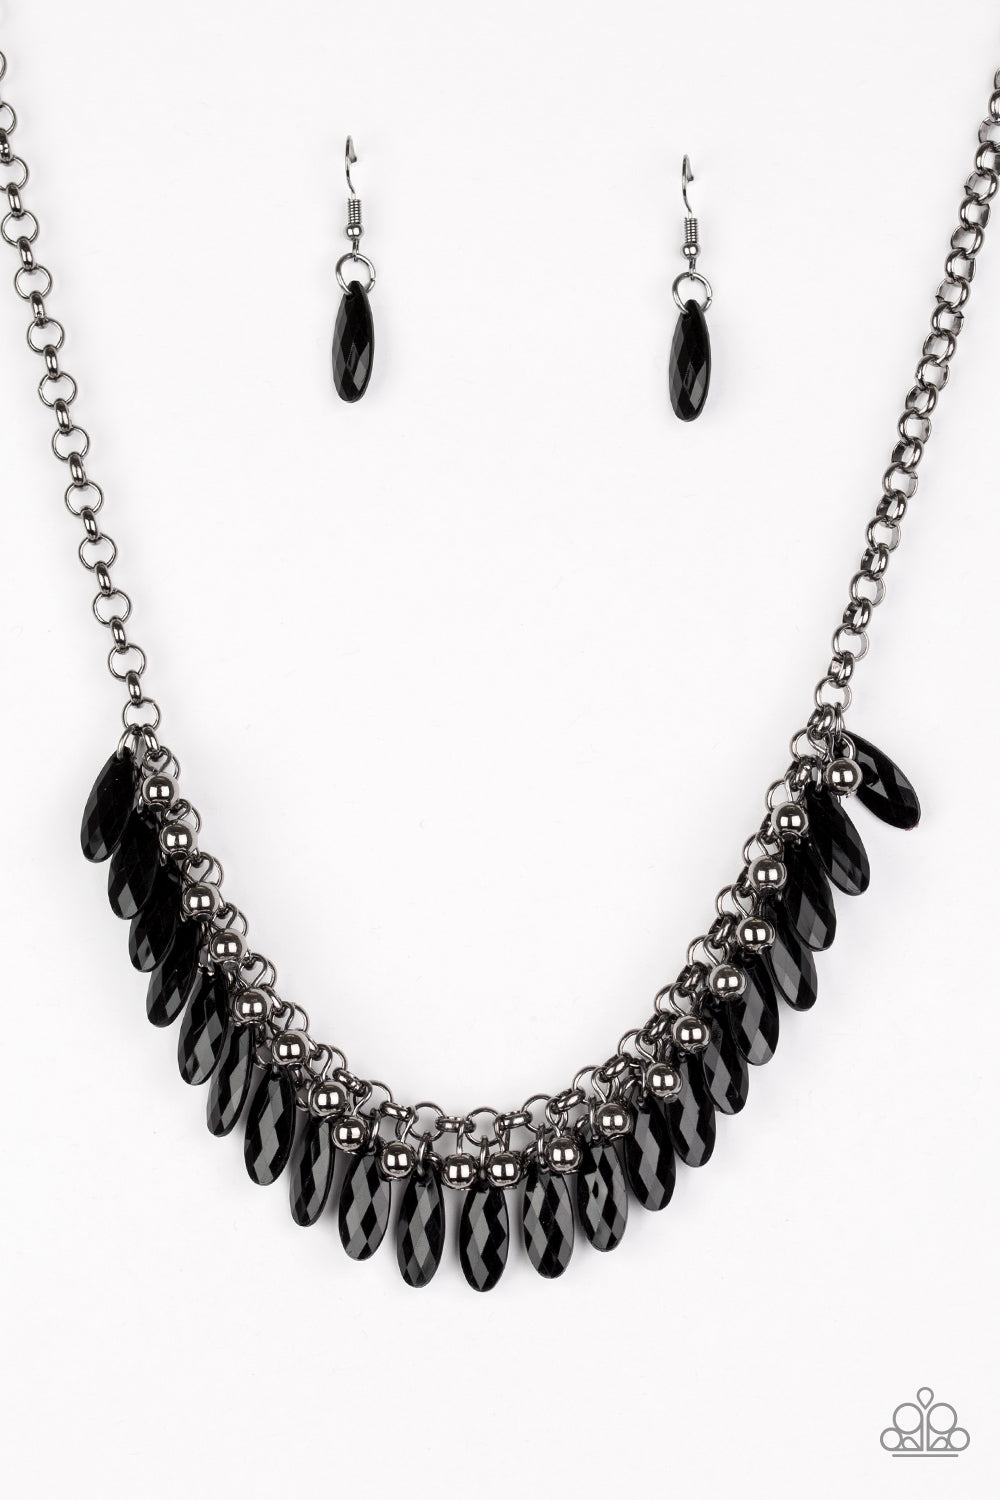 five-dollar-jewelry-jersey-shore-black-necklace-paparazzi-accessories